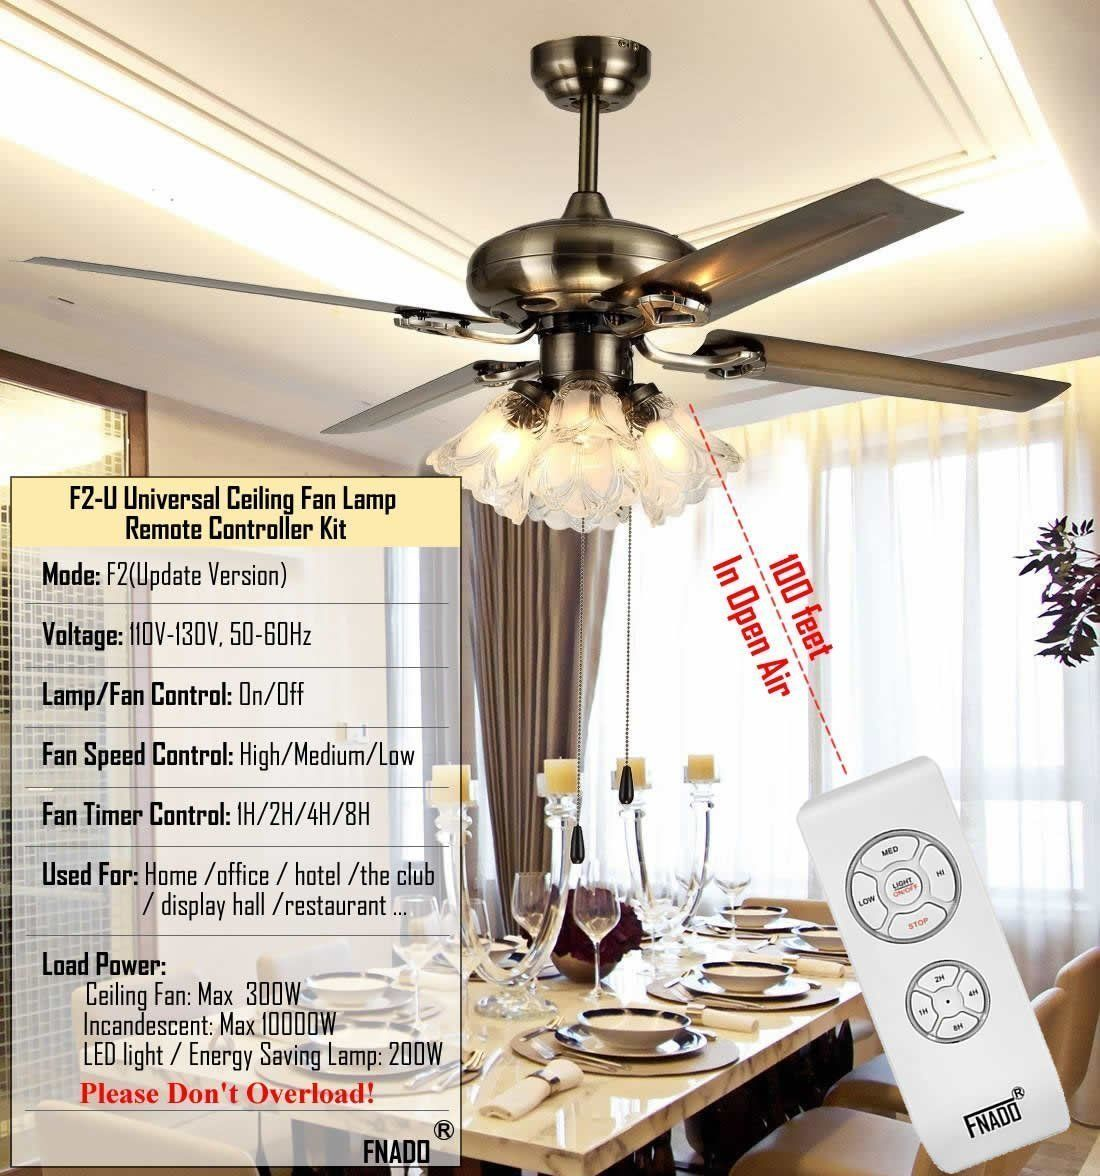 12 Simple Wiring Diagram For Ceiling Fan With Light And Remote Samples Ceiling Fan Installation Ceiling Fan Wiring Ceiling Fan With Remote